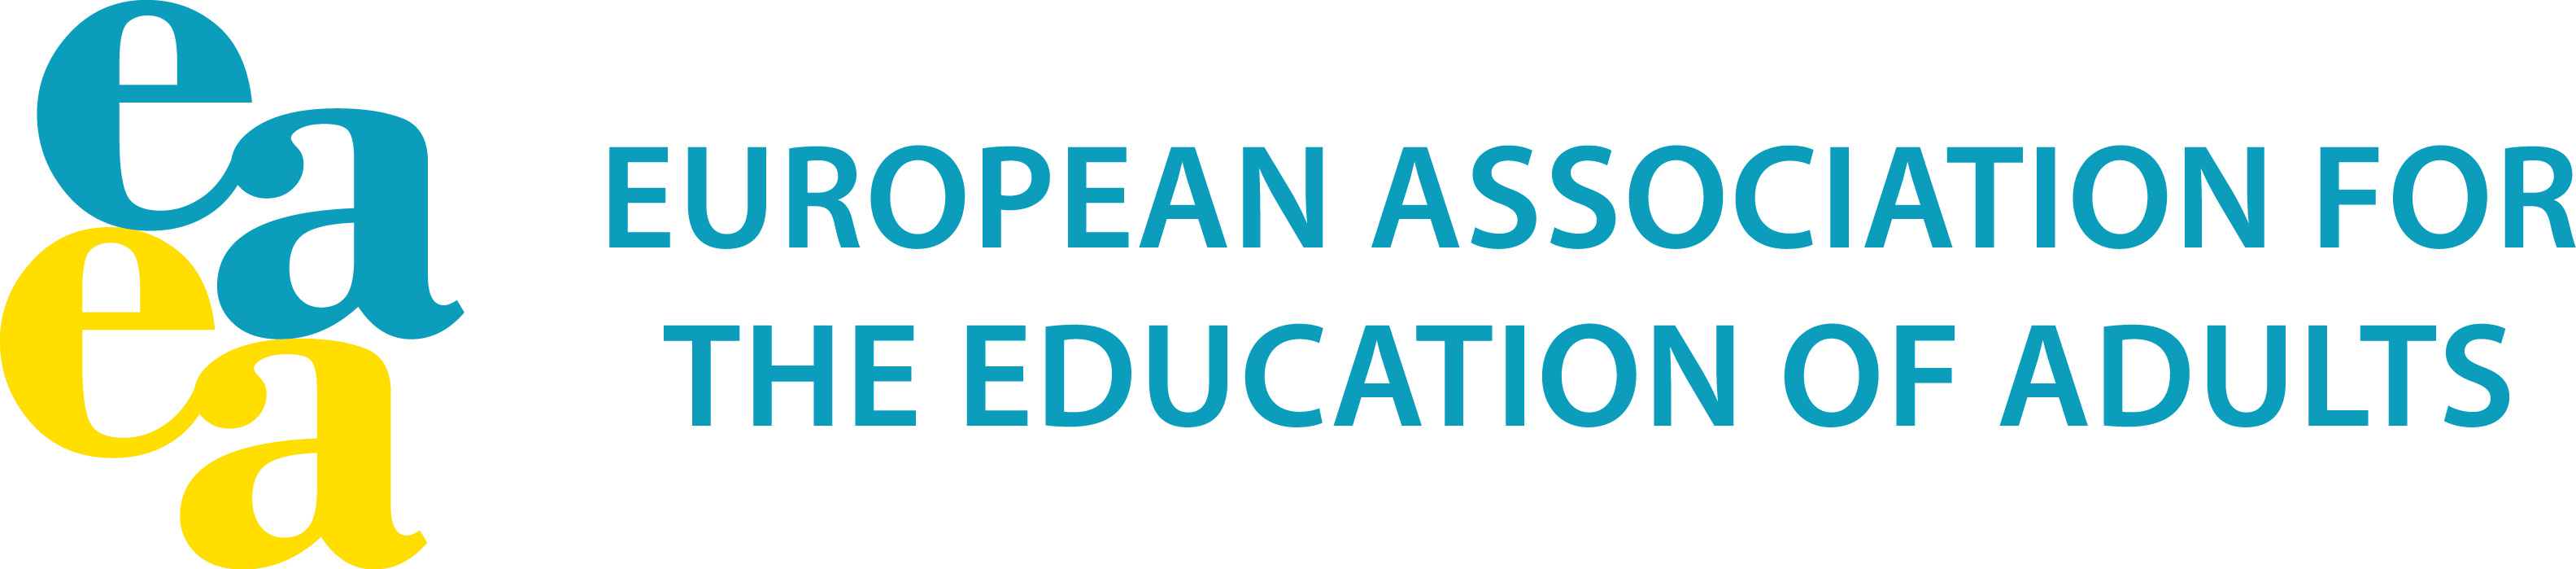 The European Association for the Education of Adults (EAEA)